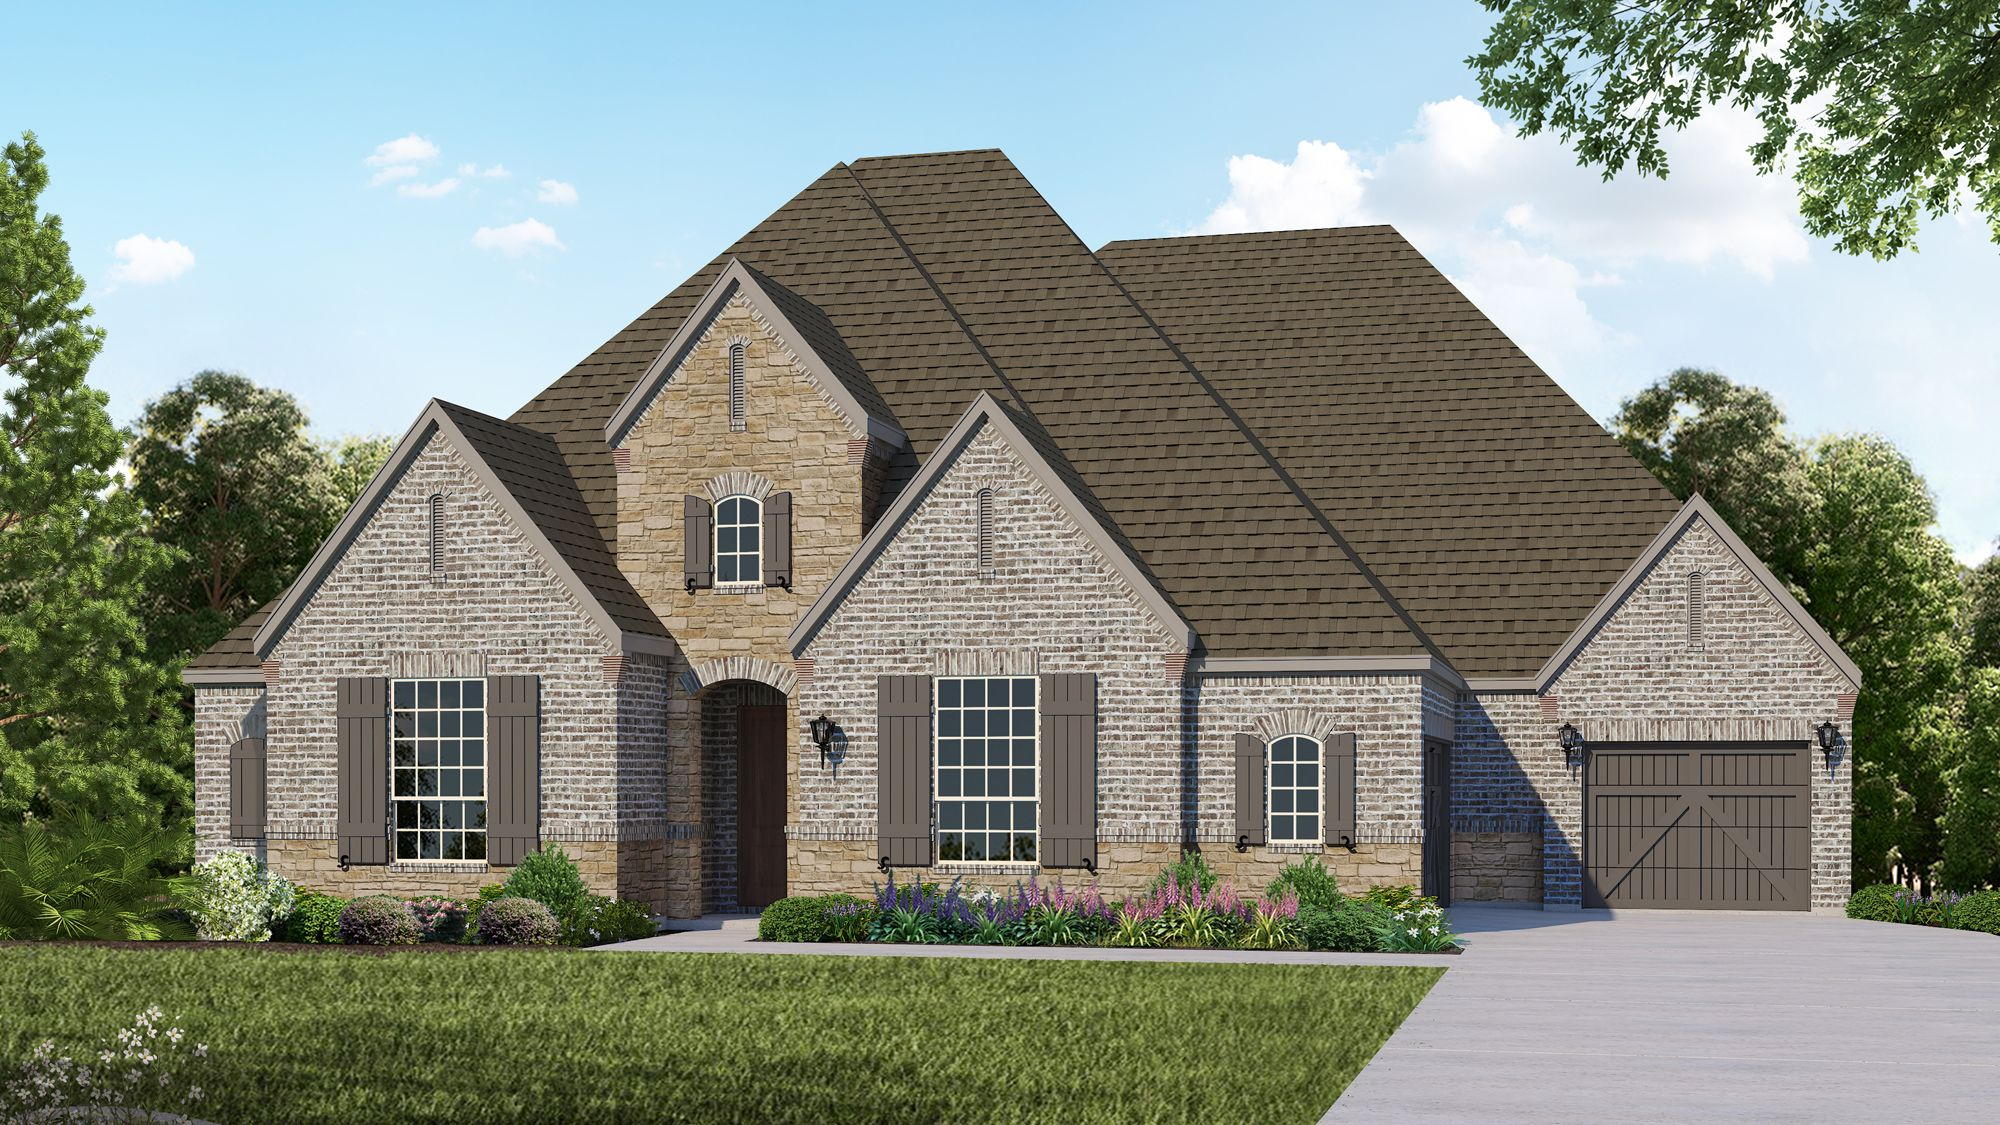 Plan B914 Elevation D with Stone